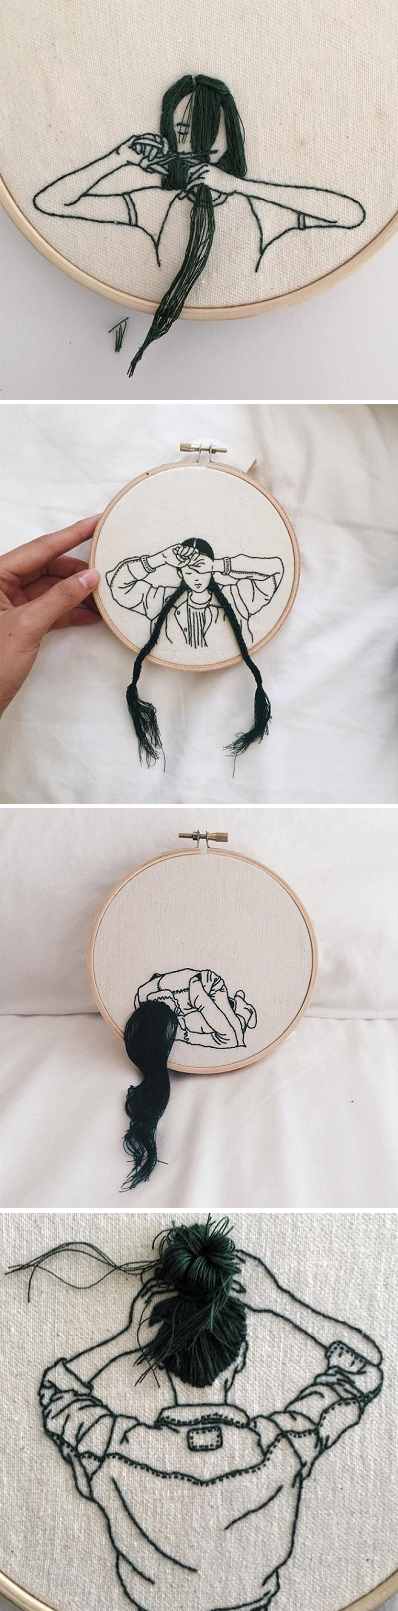 Embroidered Ladies By Sheena Liam Needles And Pins Pinterest